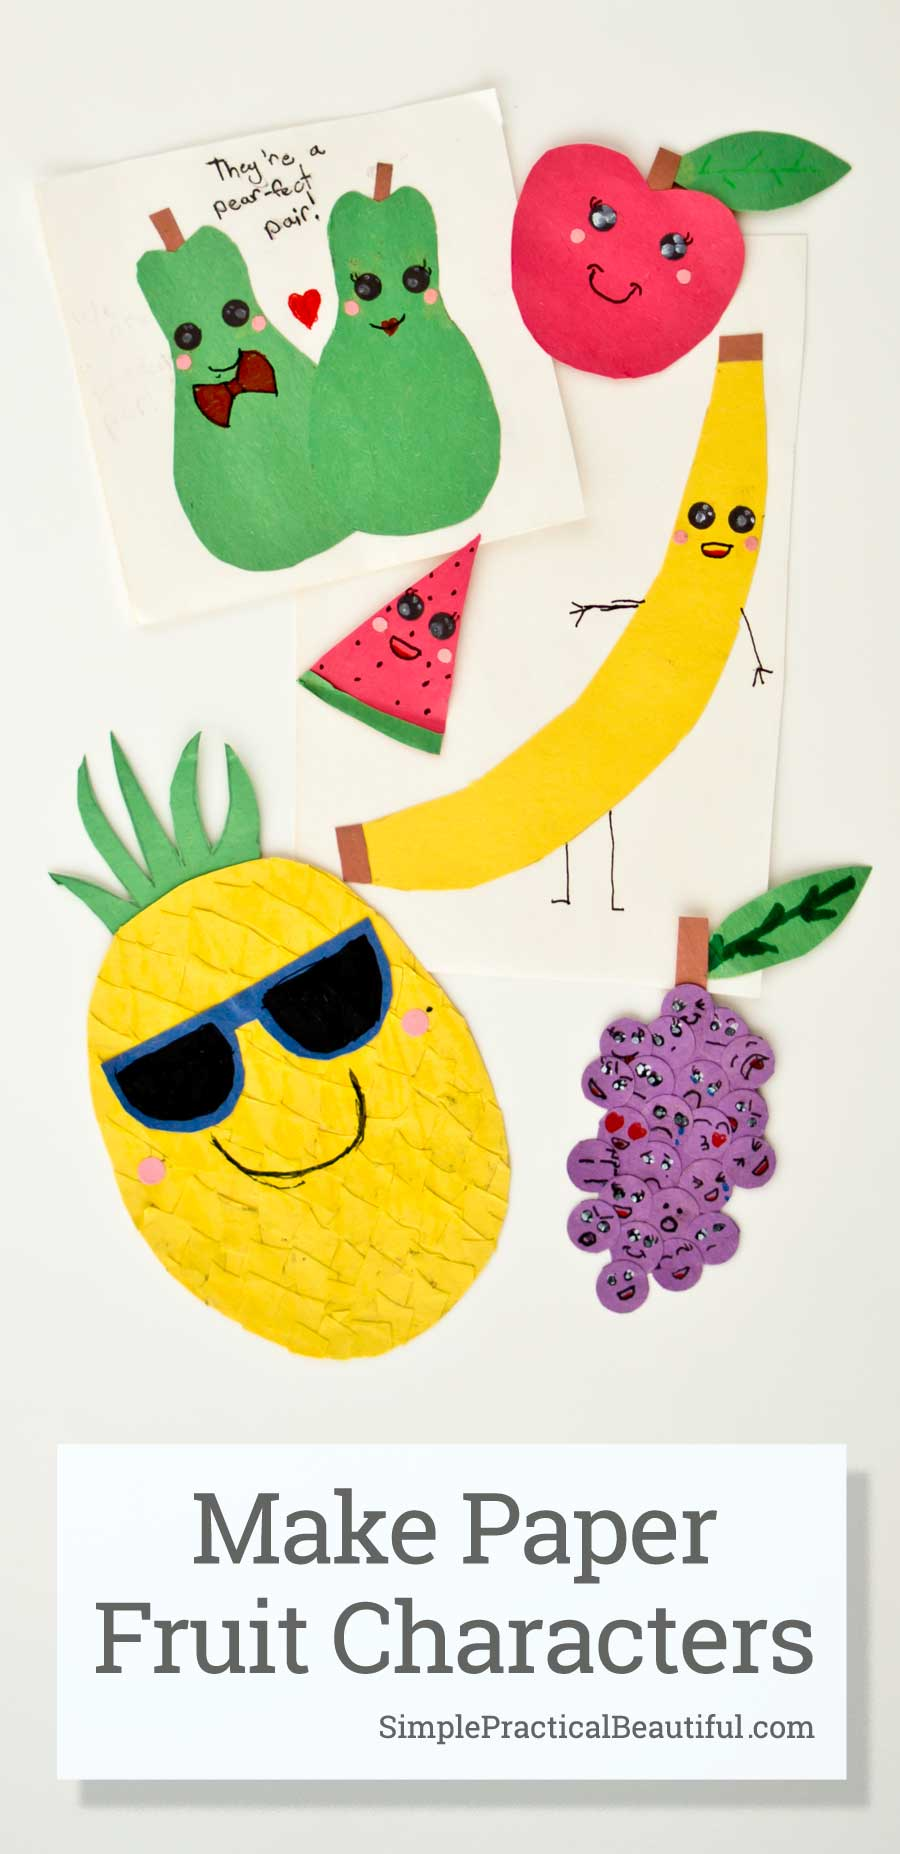 Learn how to make paper fruit embellishments that look adorable on a greeting card, scrapbook, journal, gift tag, and more | construction paper fruit characters | apple, banana, pineapple, grapes, watermelon, and a pair of pears